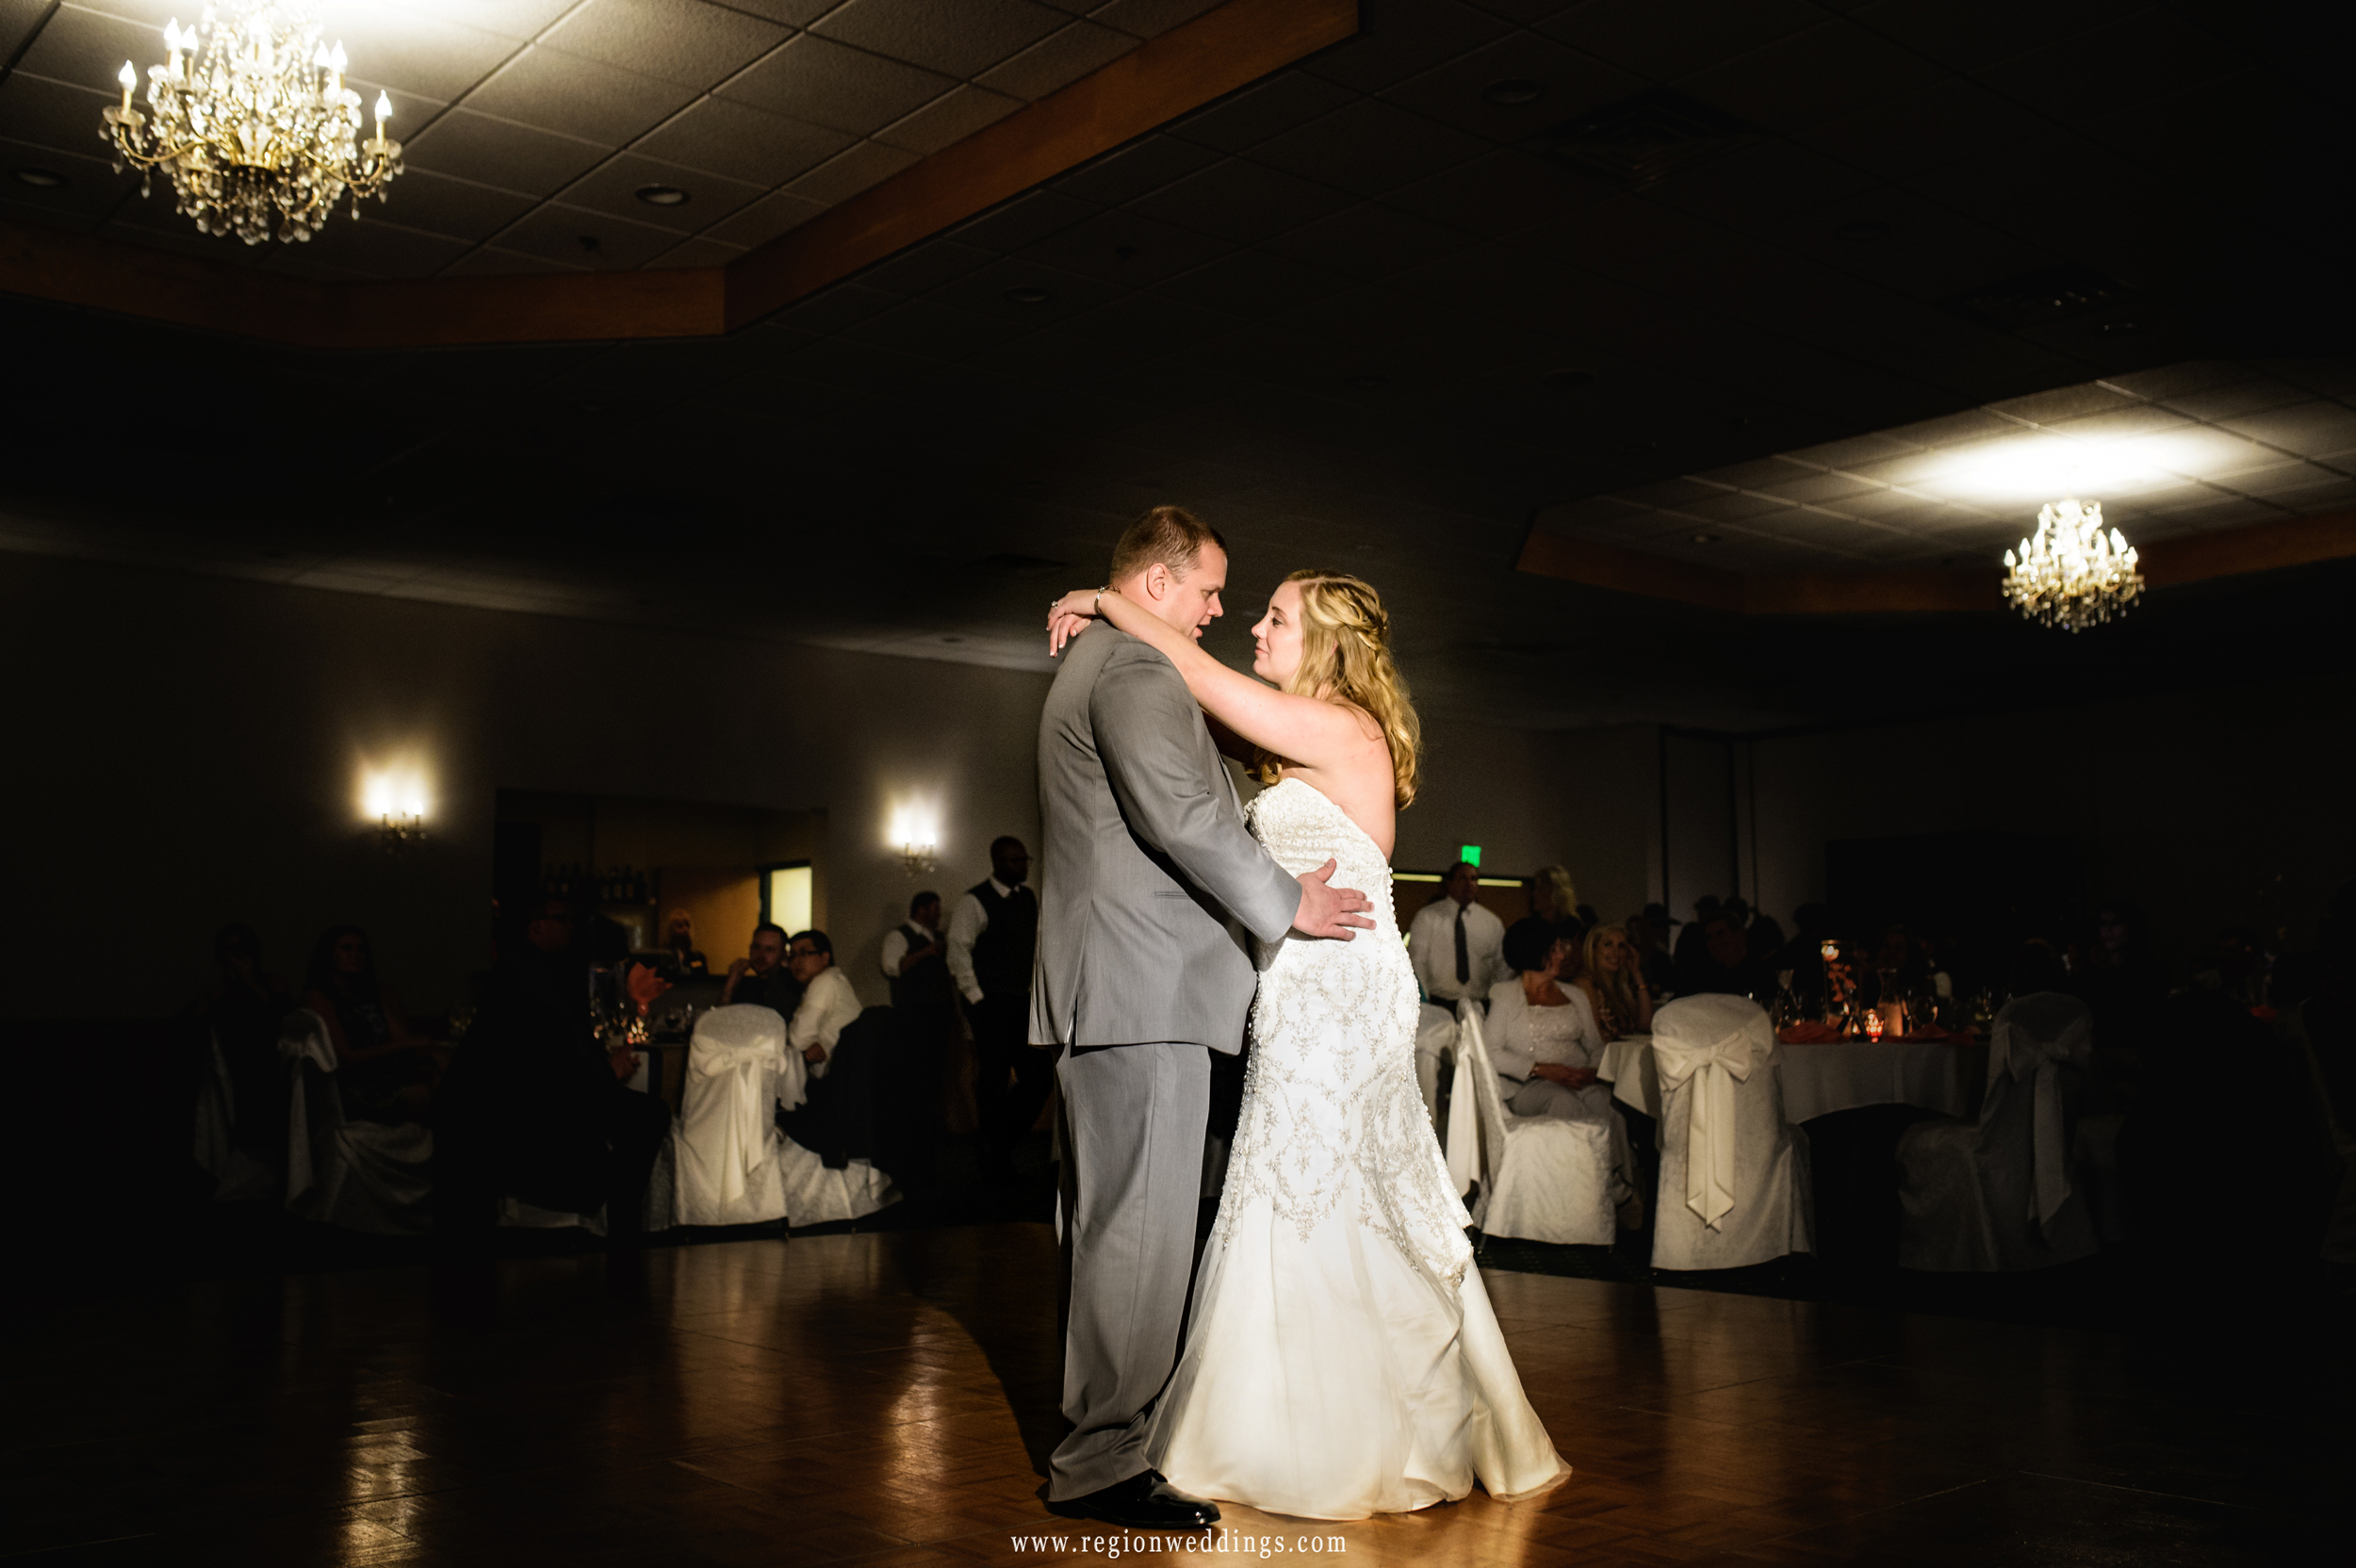 First dance for an October wedding reception at The Patrician.